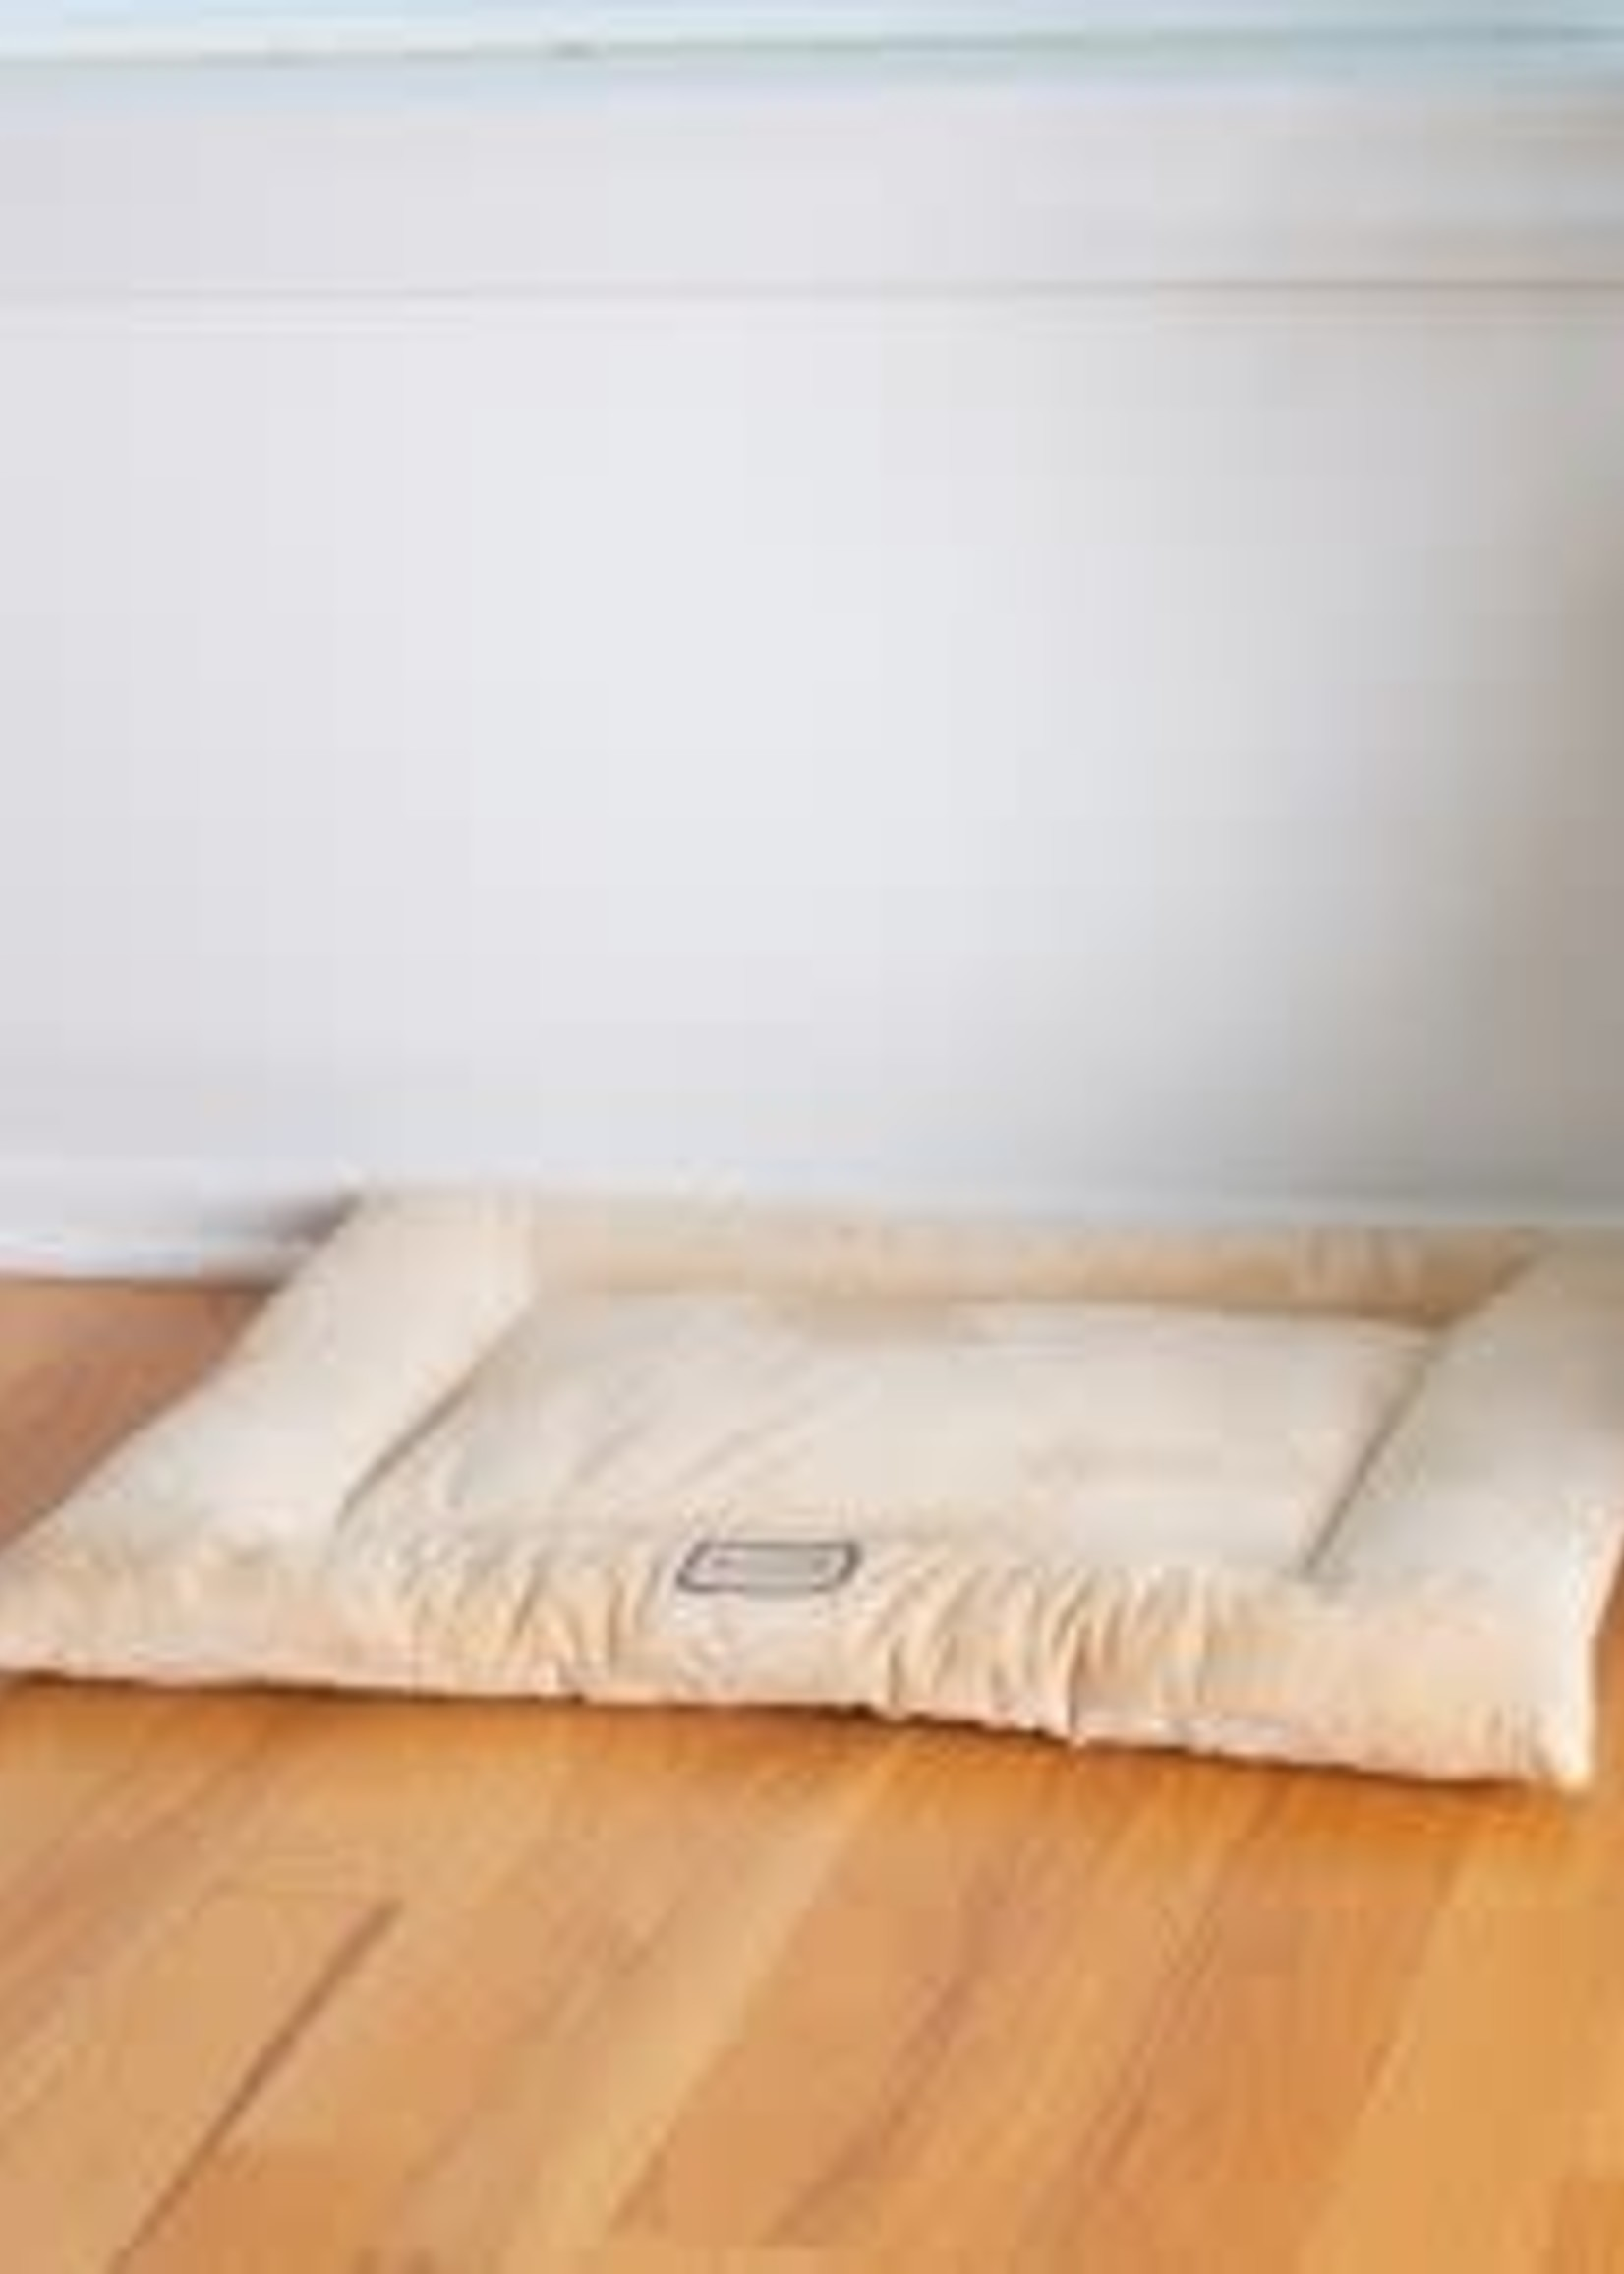 Armarkat Armarkat Med Dog Crate Soft Pad Mat w/Poly Fill Cushion Beige